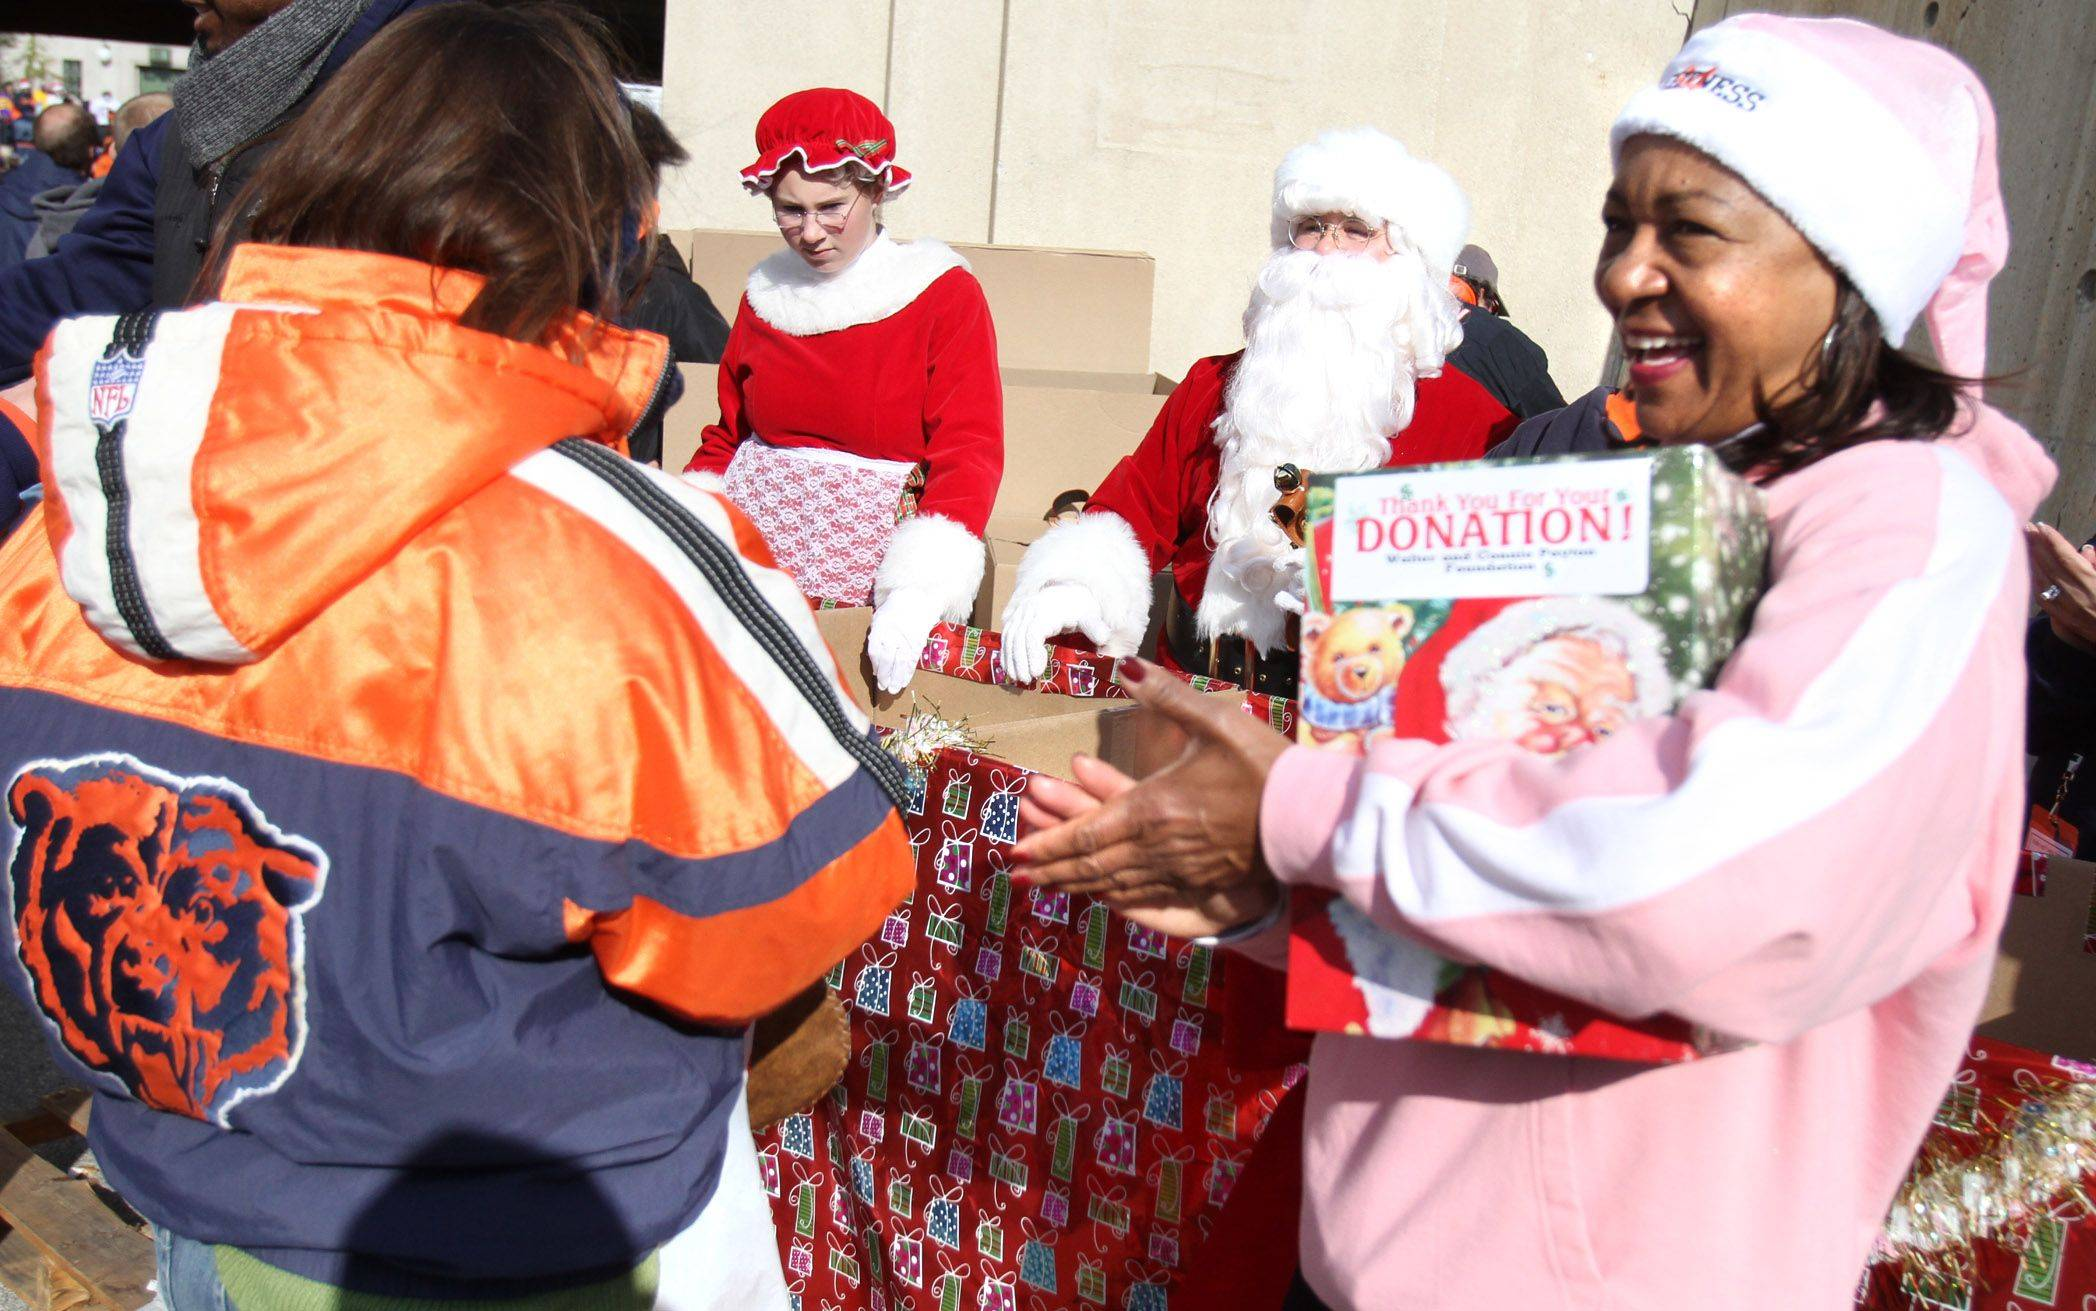 Connie Payton collects toys with Santa Claus and Ms. Claus for The Walter and Connie Payton Foundations before the Chicago Bears against Minnesota Vikings at Soldier Field.